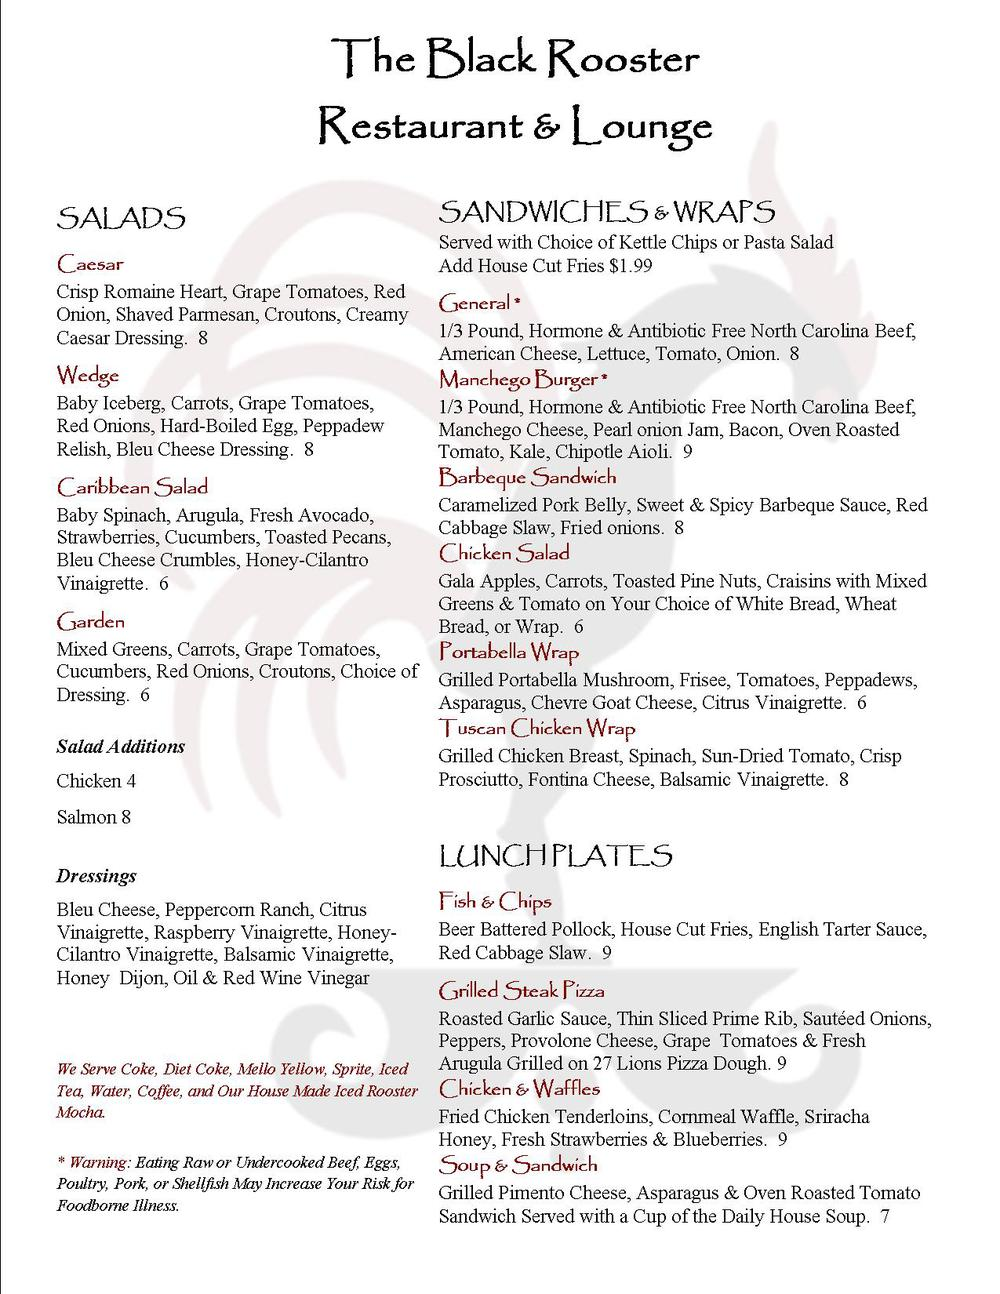 Black Rooster Lunch Menu